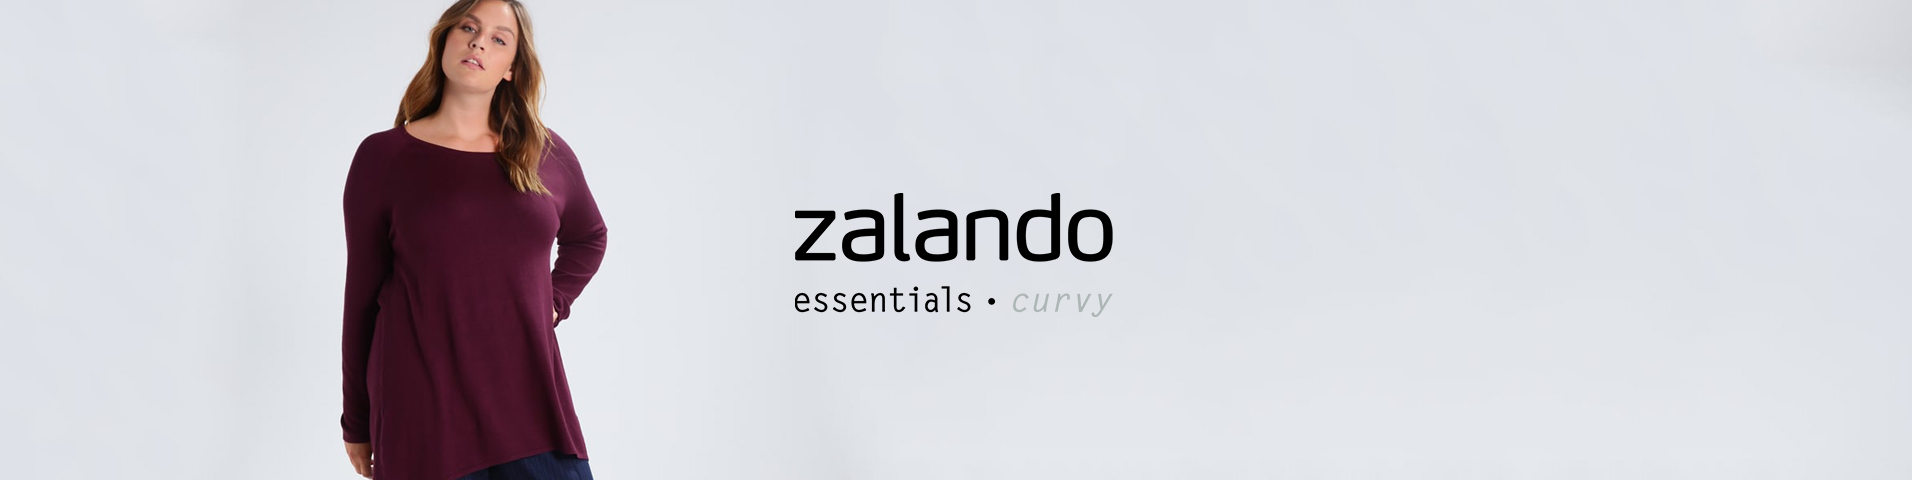 7b52daa858f5 Zalando Essentials Curvy Online-Shop | Zalando Essentials Curvy ...